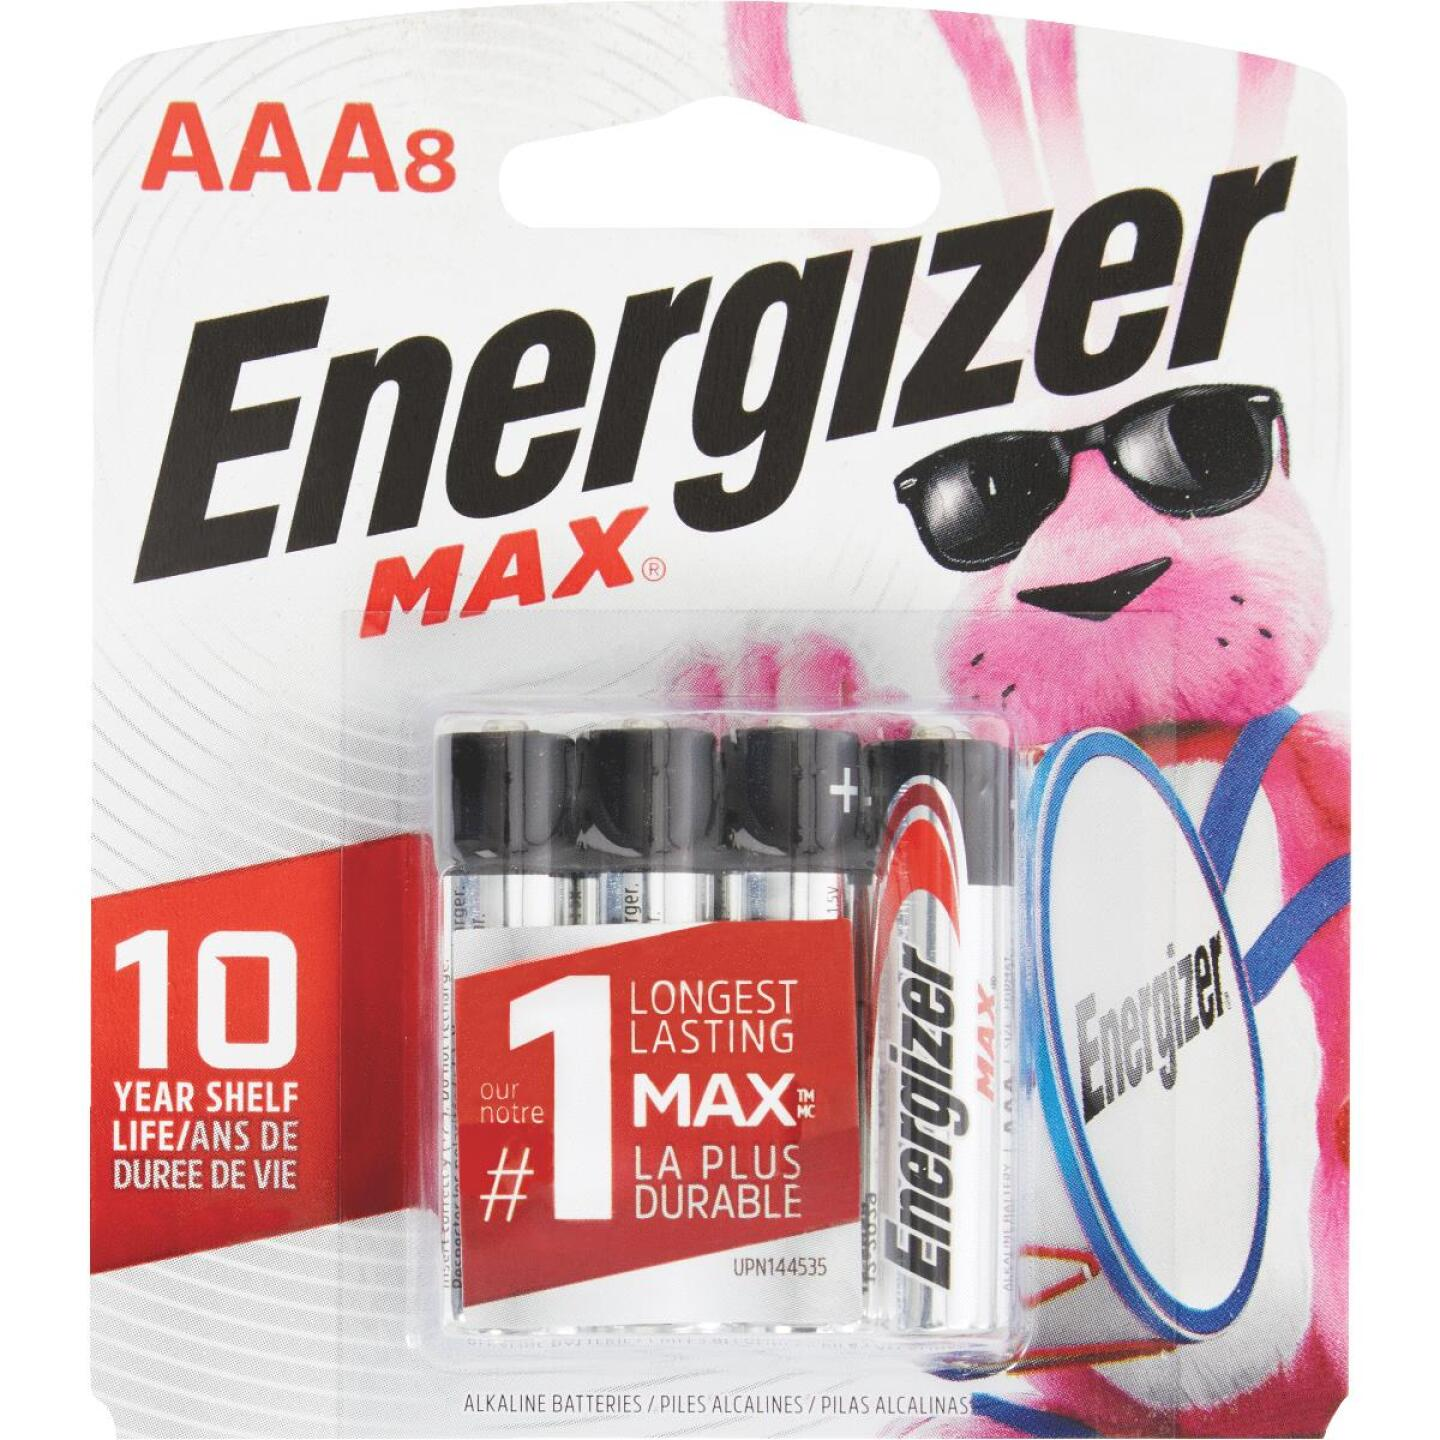 Energizer Max AAA Alkaline Battery (8-Pack) Image 4